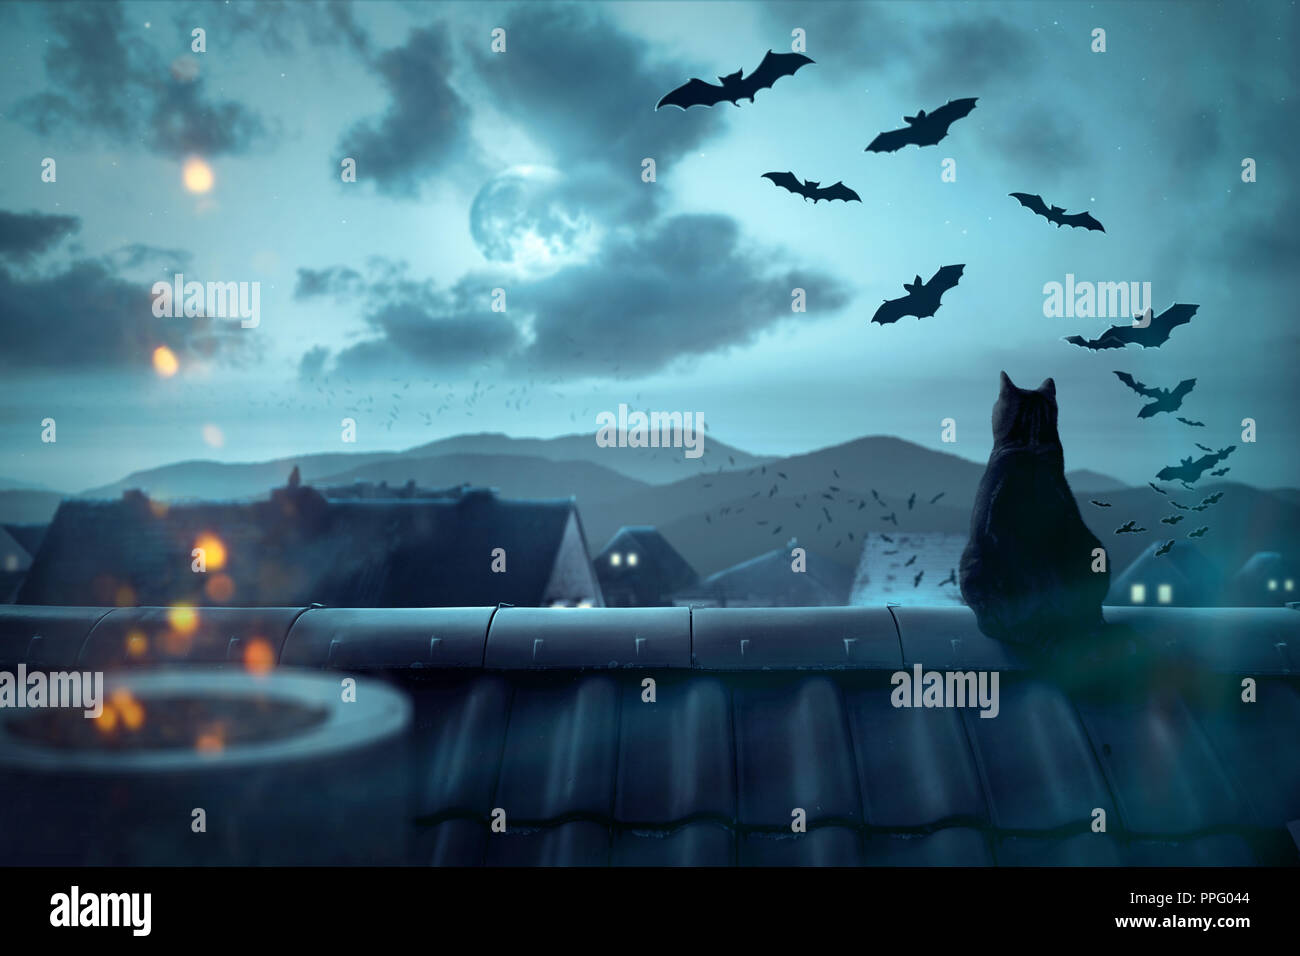 Spooky atmosphere over the rooftops - Stock Image